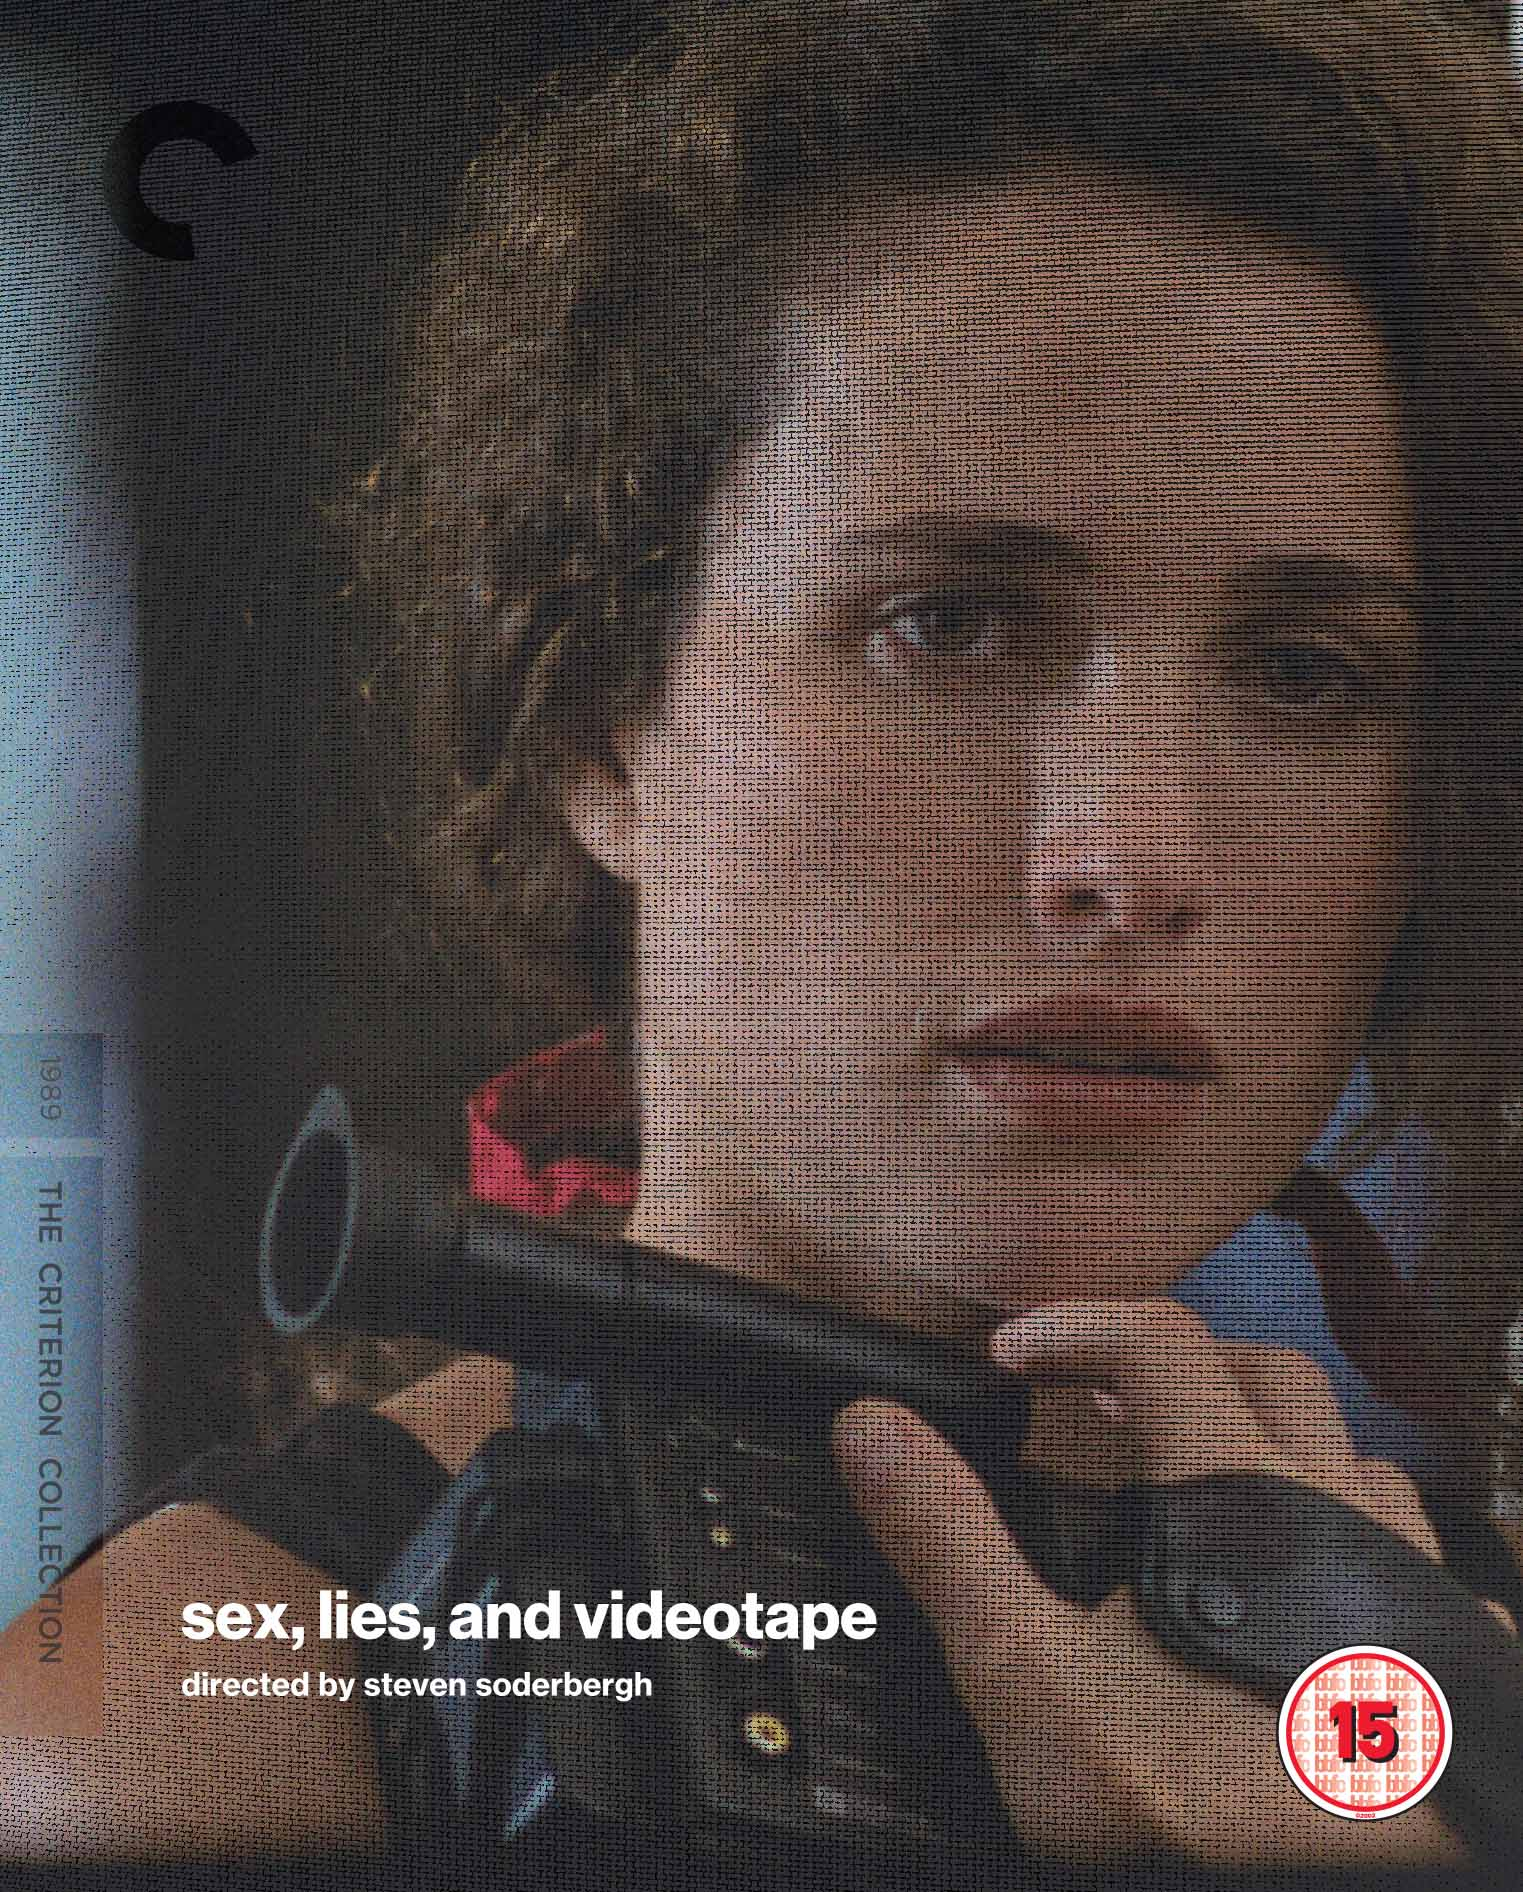 Buy Sex, Lies, and Videotape (Blu-ray)